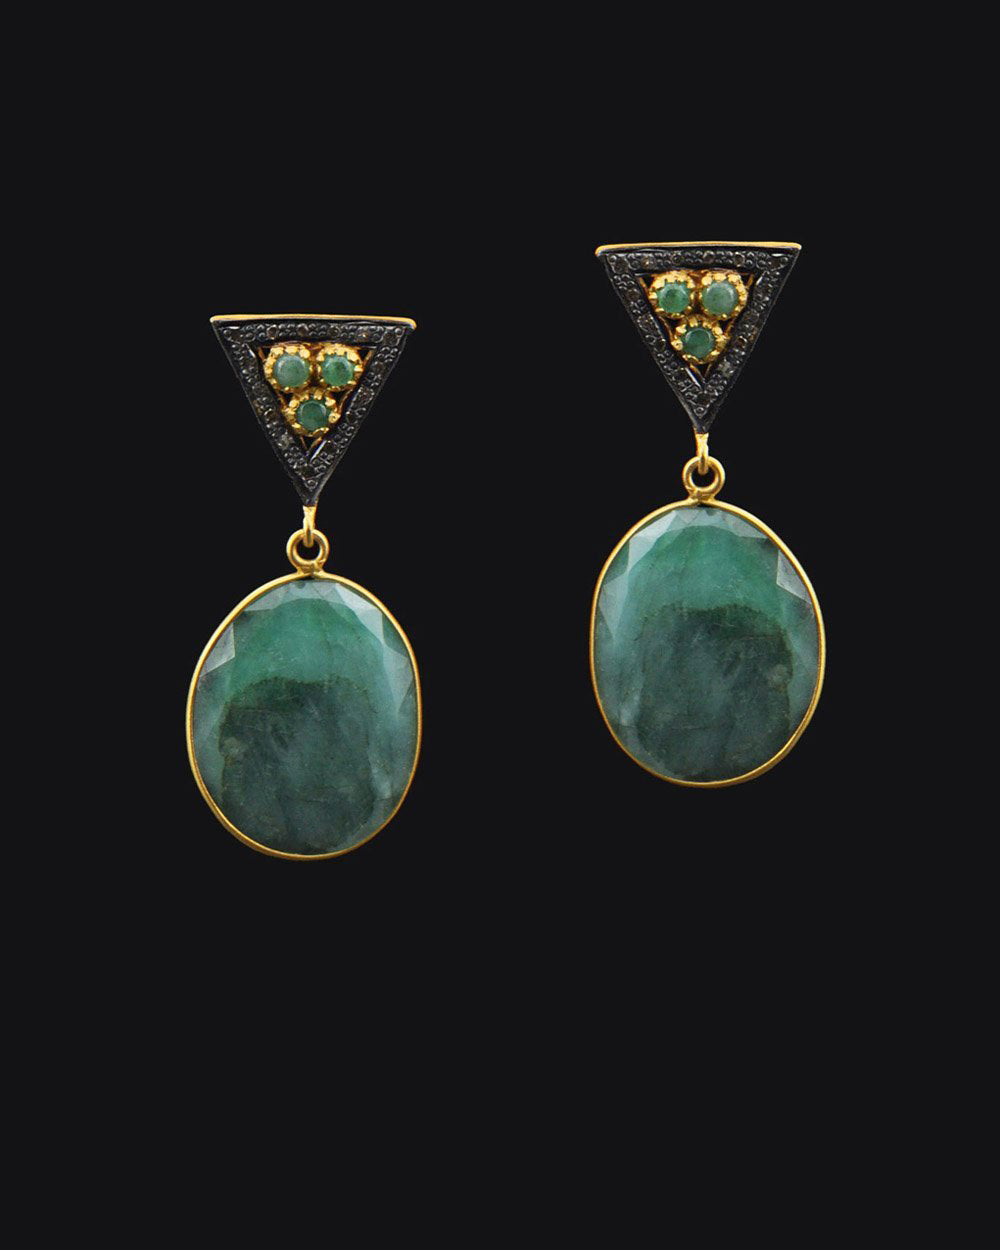 Emerald and Diamond Drop Earrings in Gold Vermeil